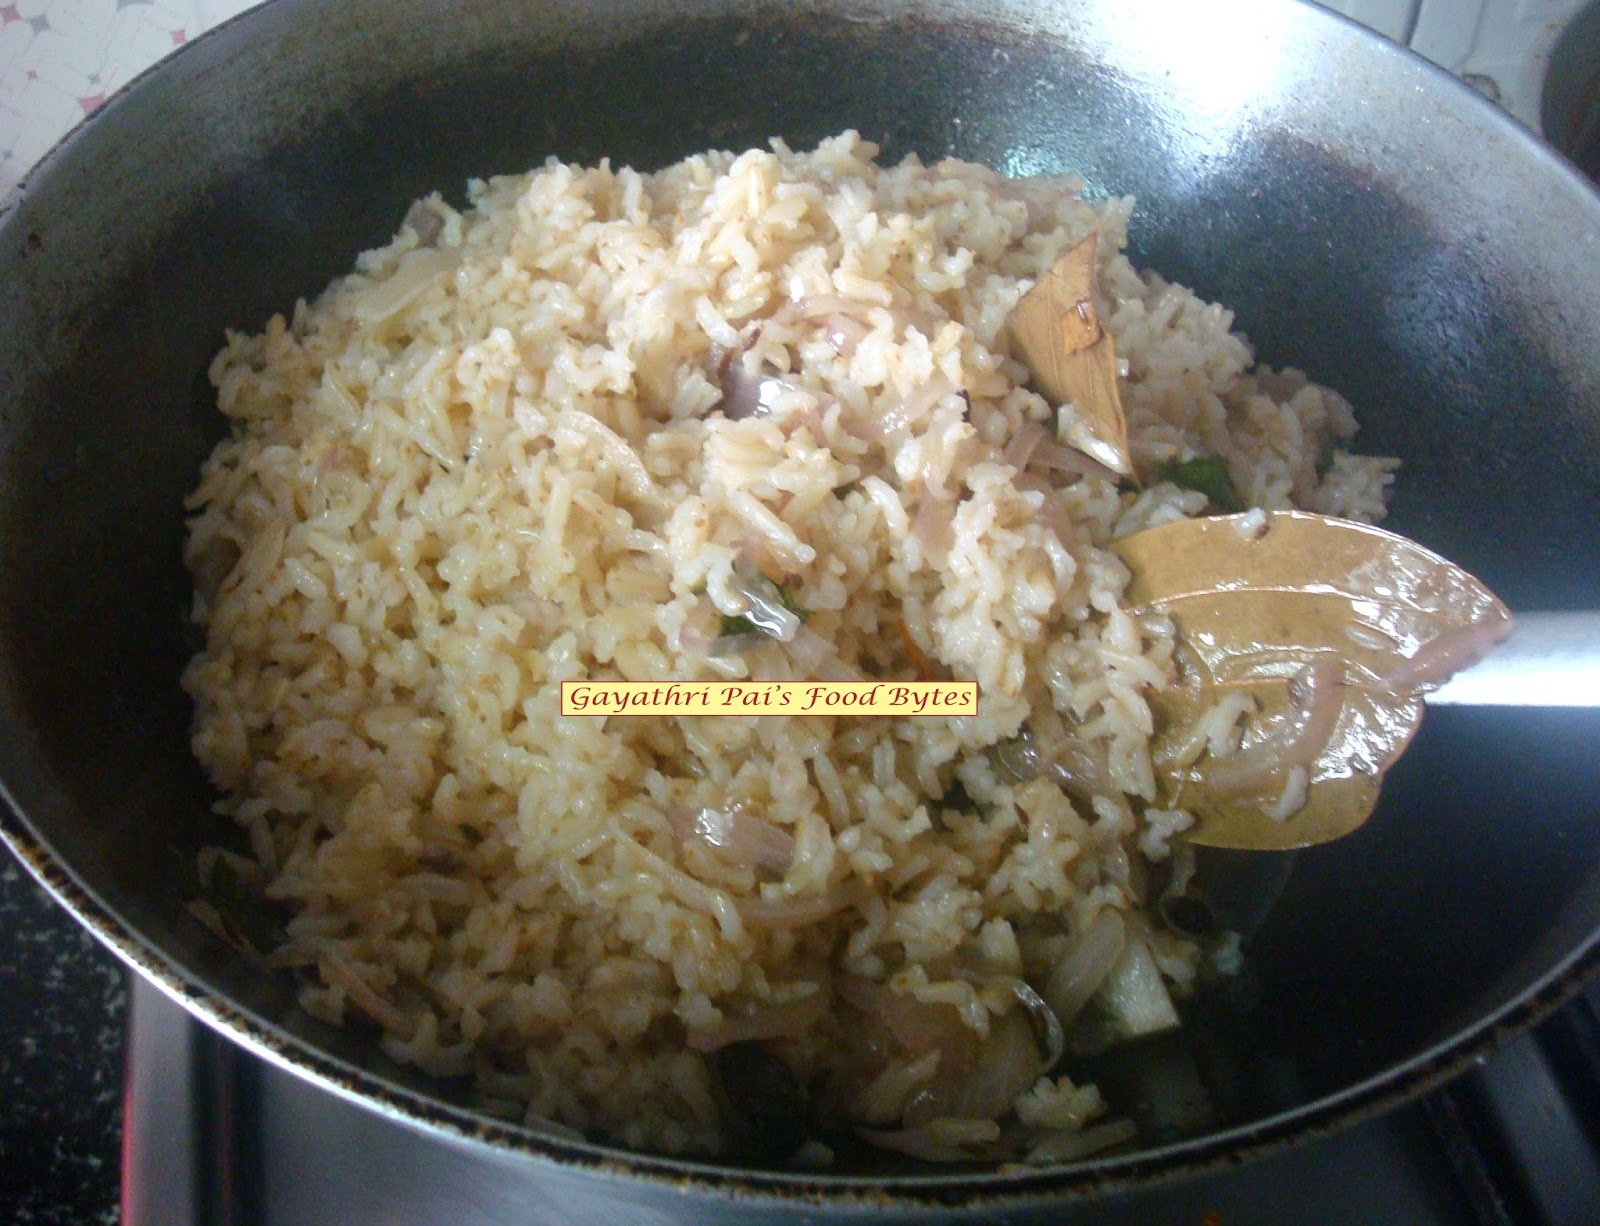 Now Add In The Cooked Brown Basmati Rice And Mix Well, Let Cook On Slow